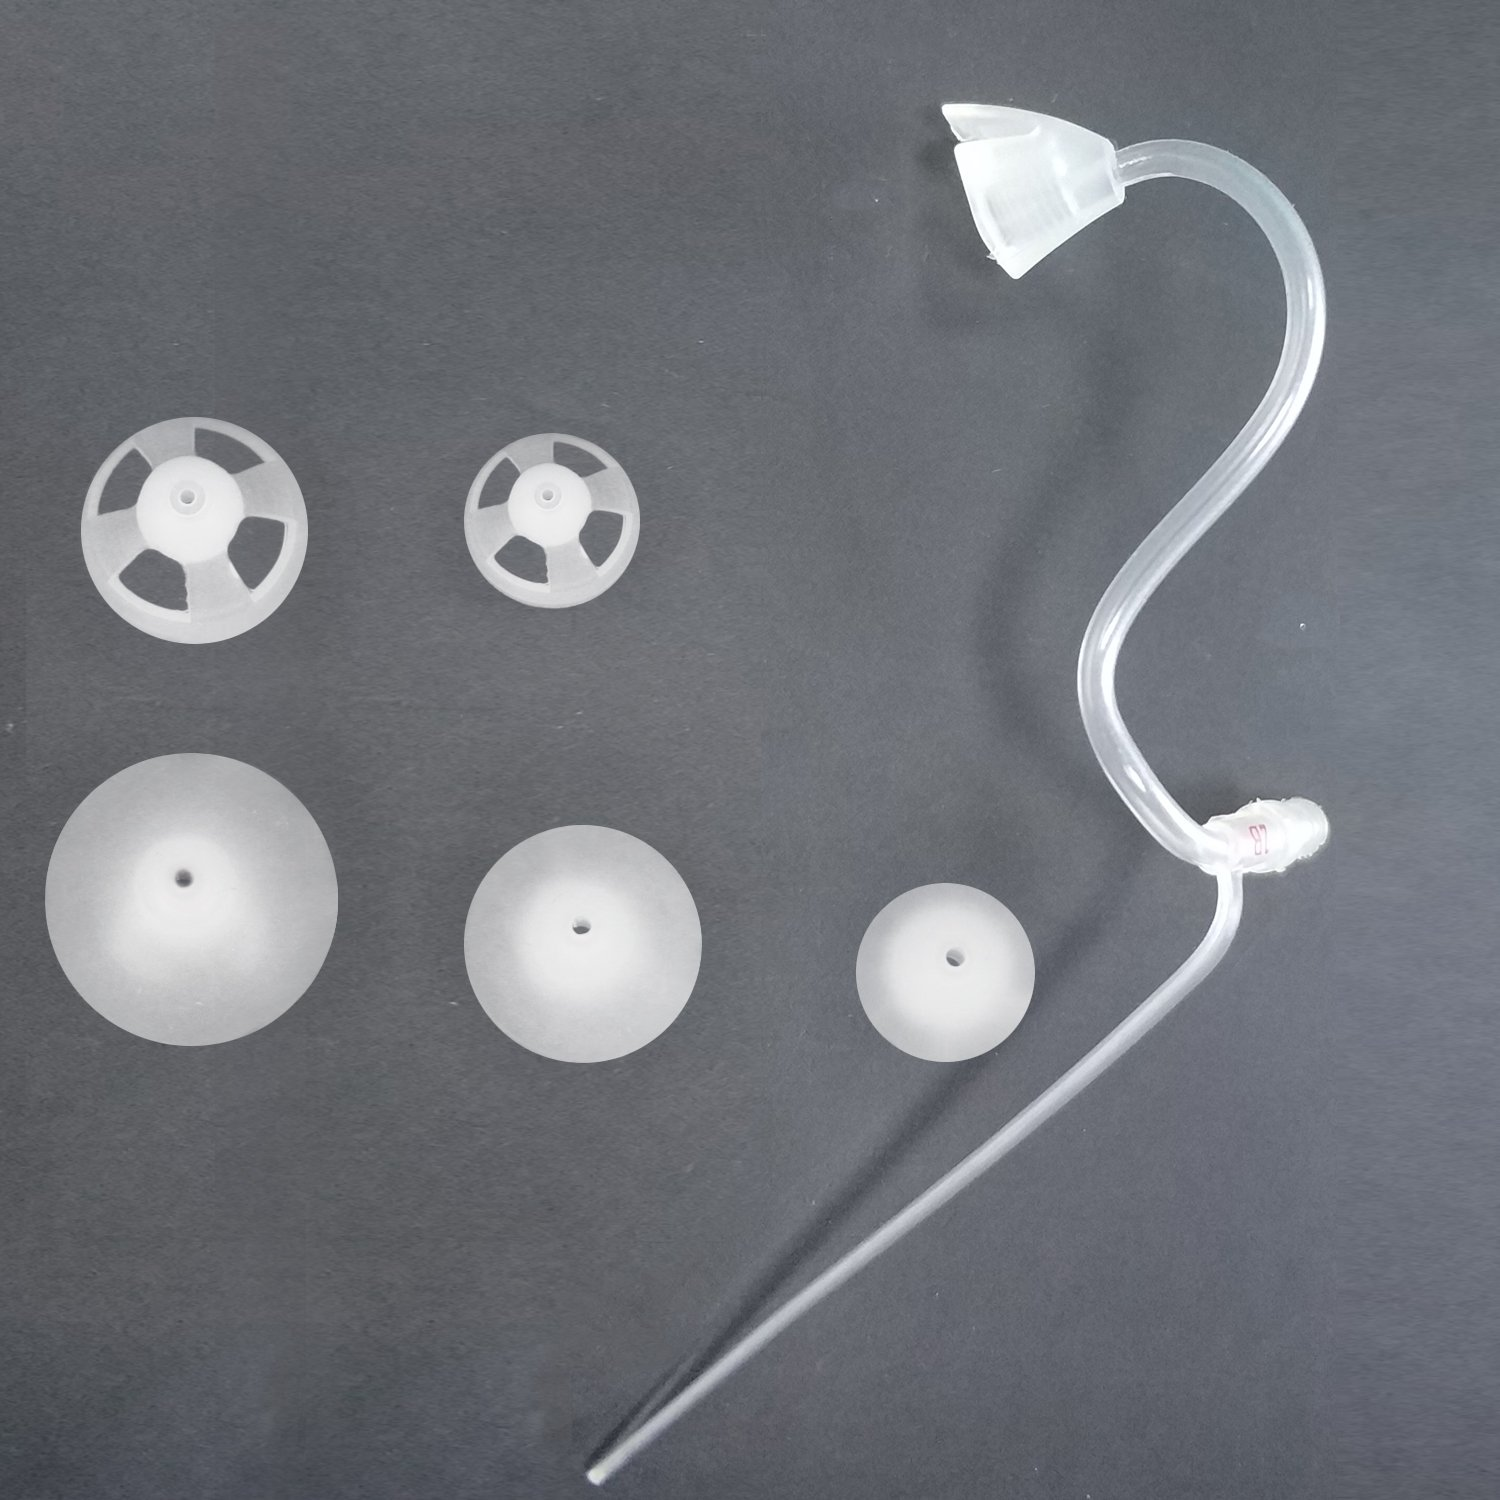 Banglijian Hearing Amplifier Replacement Slim Sound Tubes and Domes for Ziv-201A and Ziv-201 (2 Tubes-Size 2B and 10 Domes, Right)